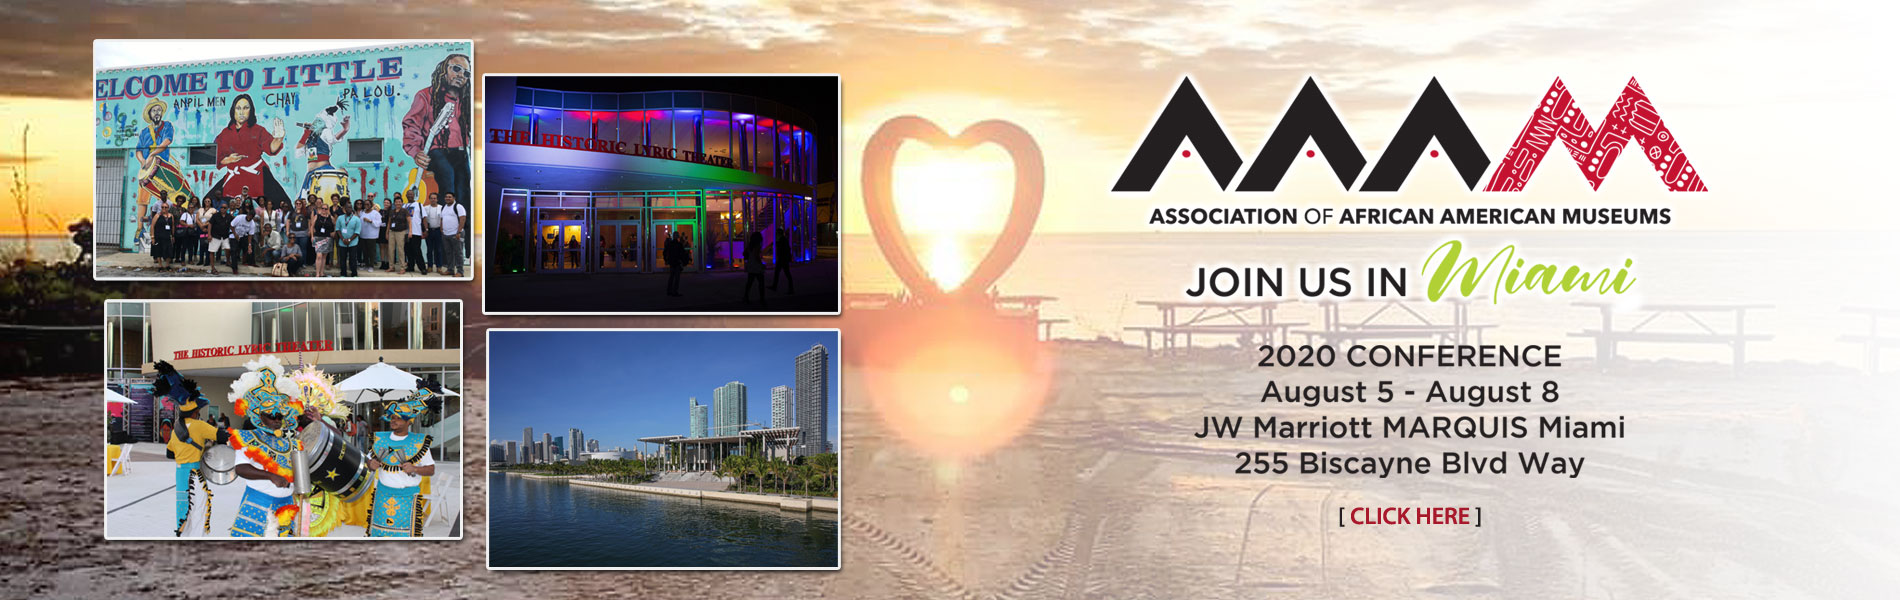 2020 AAAM Conference save the date